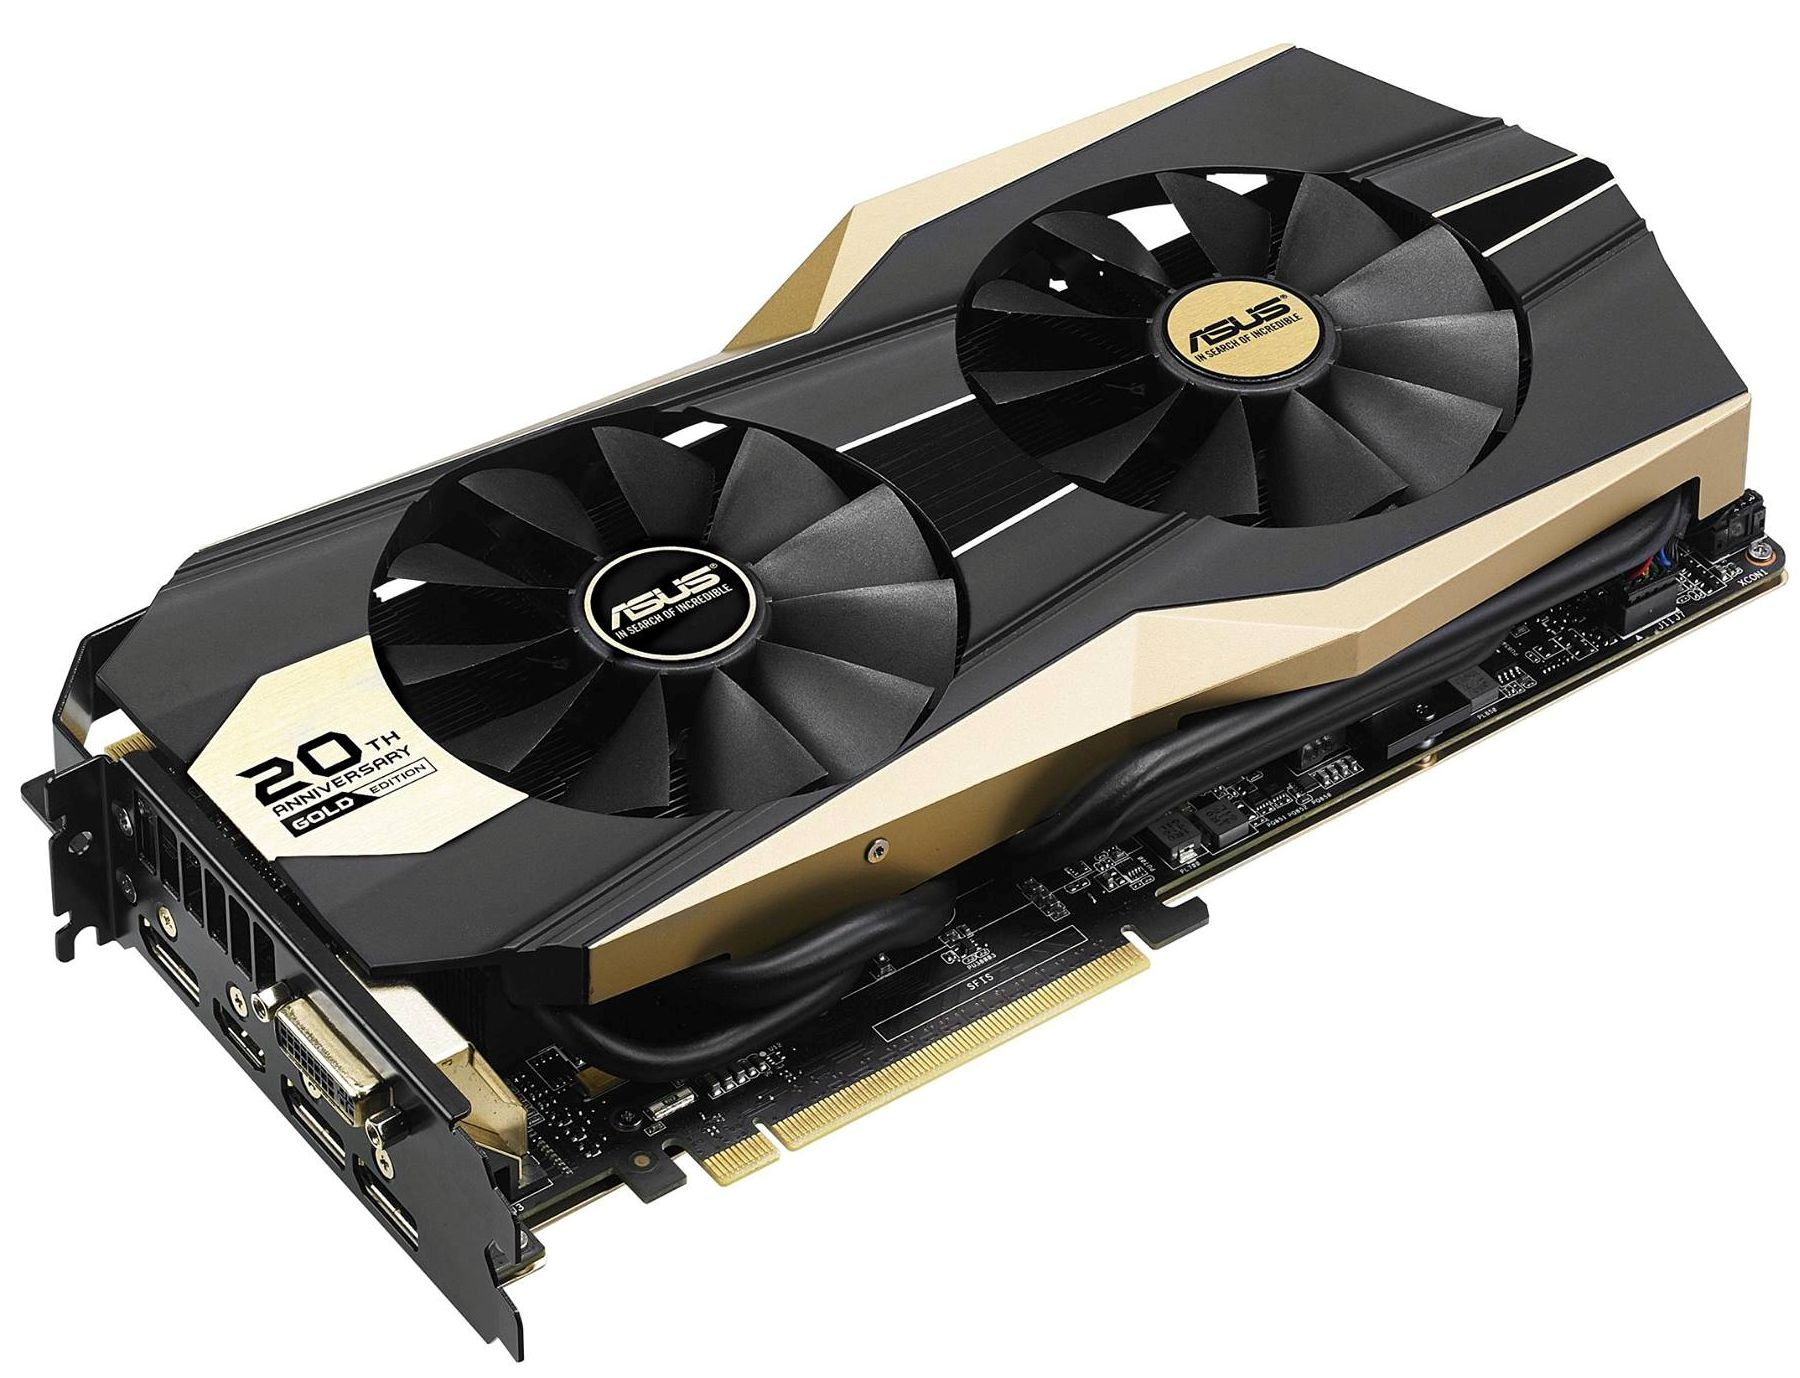 ASUS presenta la GTX 980 20th Anniversary Golden Edition e la GTX 970 Turbo